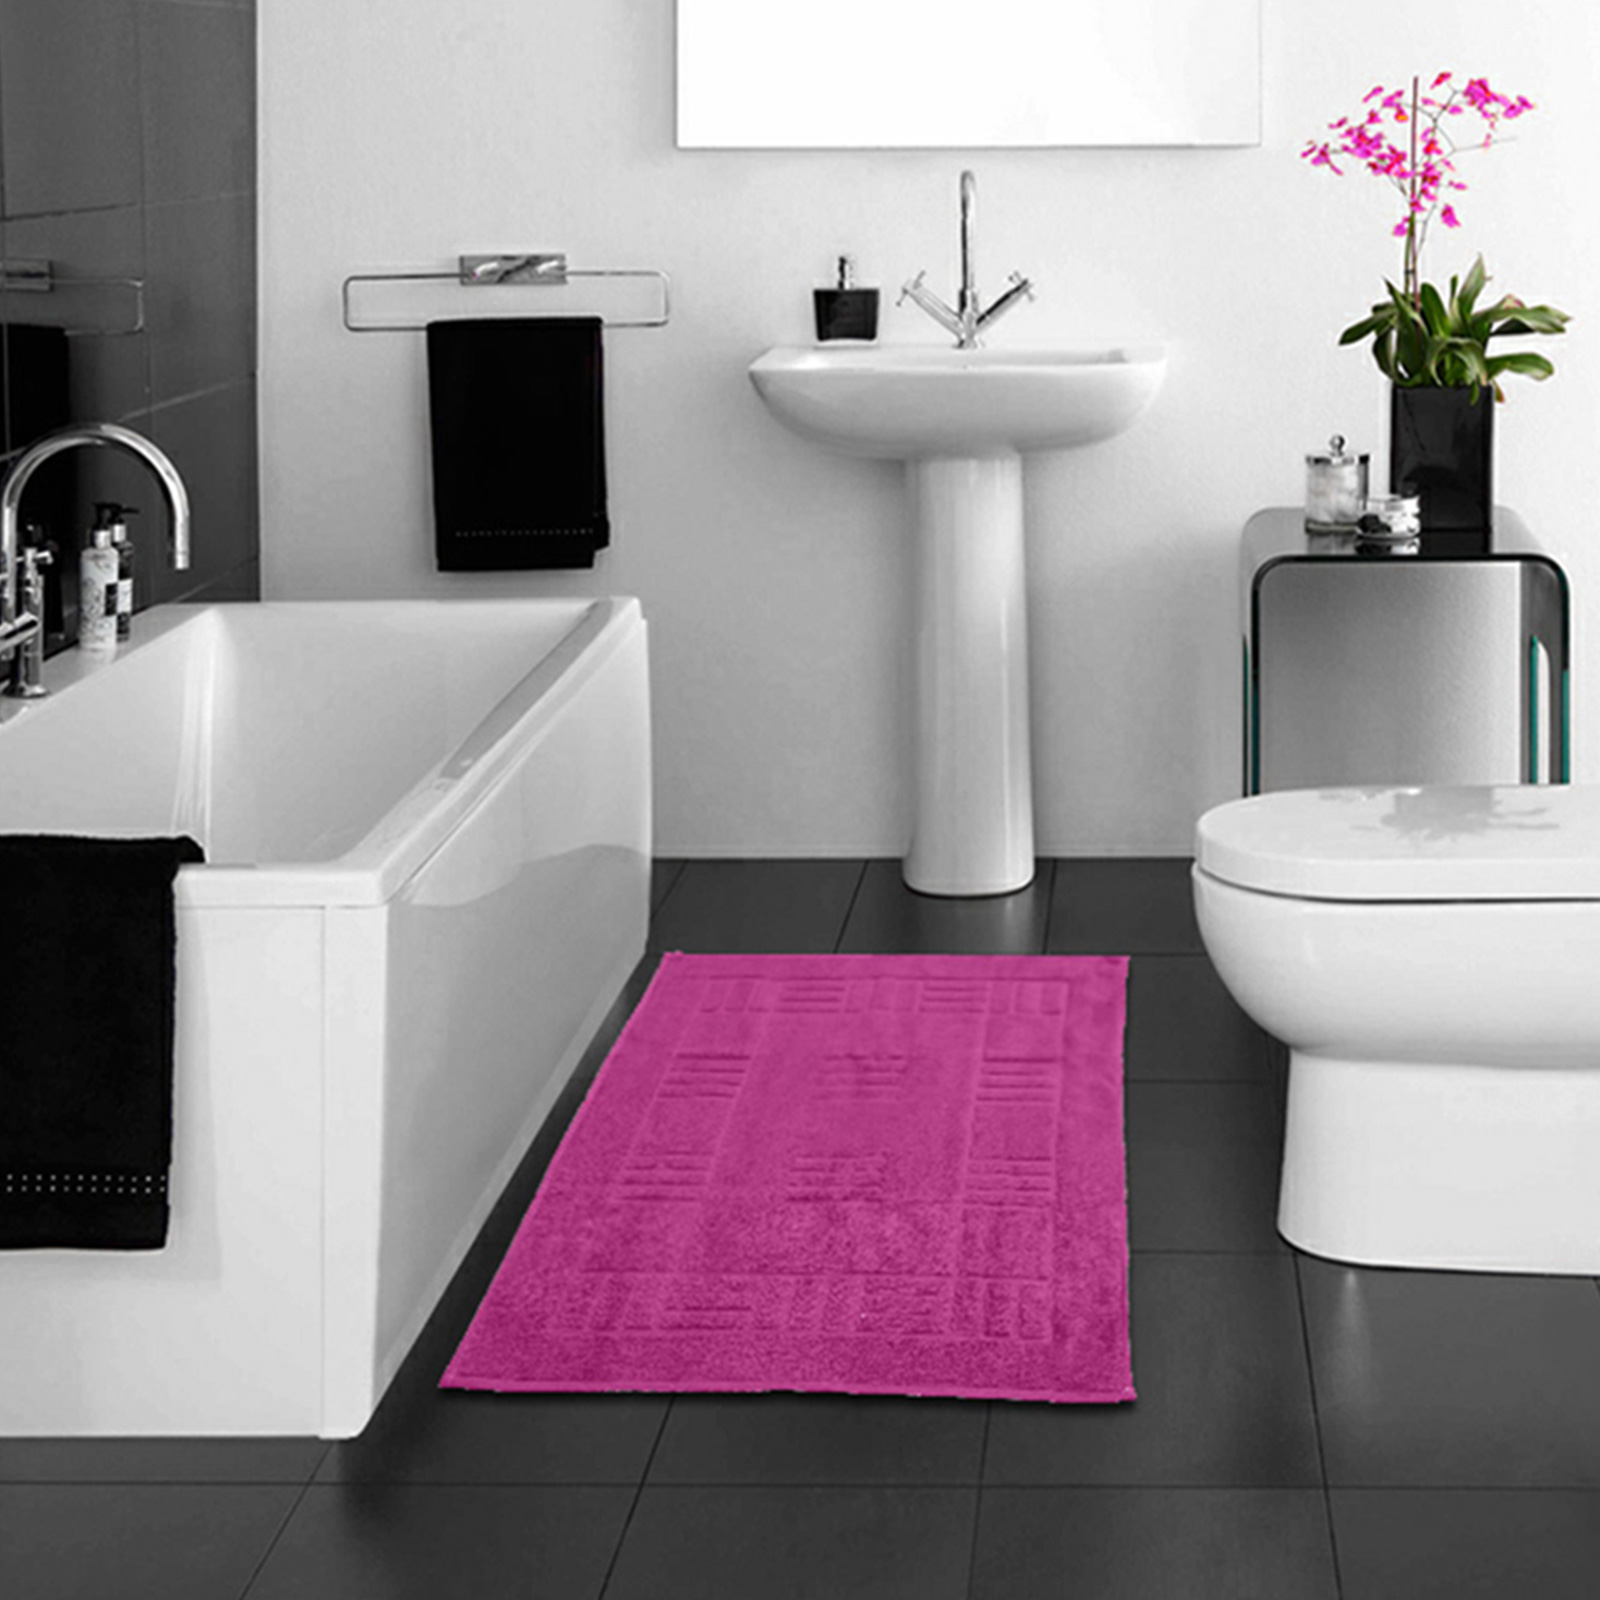 100 Egyptian Cotton Bathroom Mats Rugs Super Soft